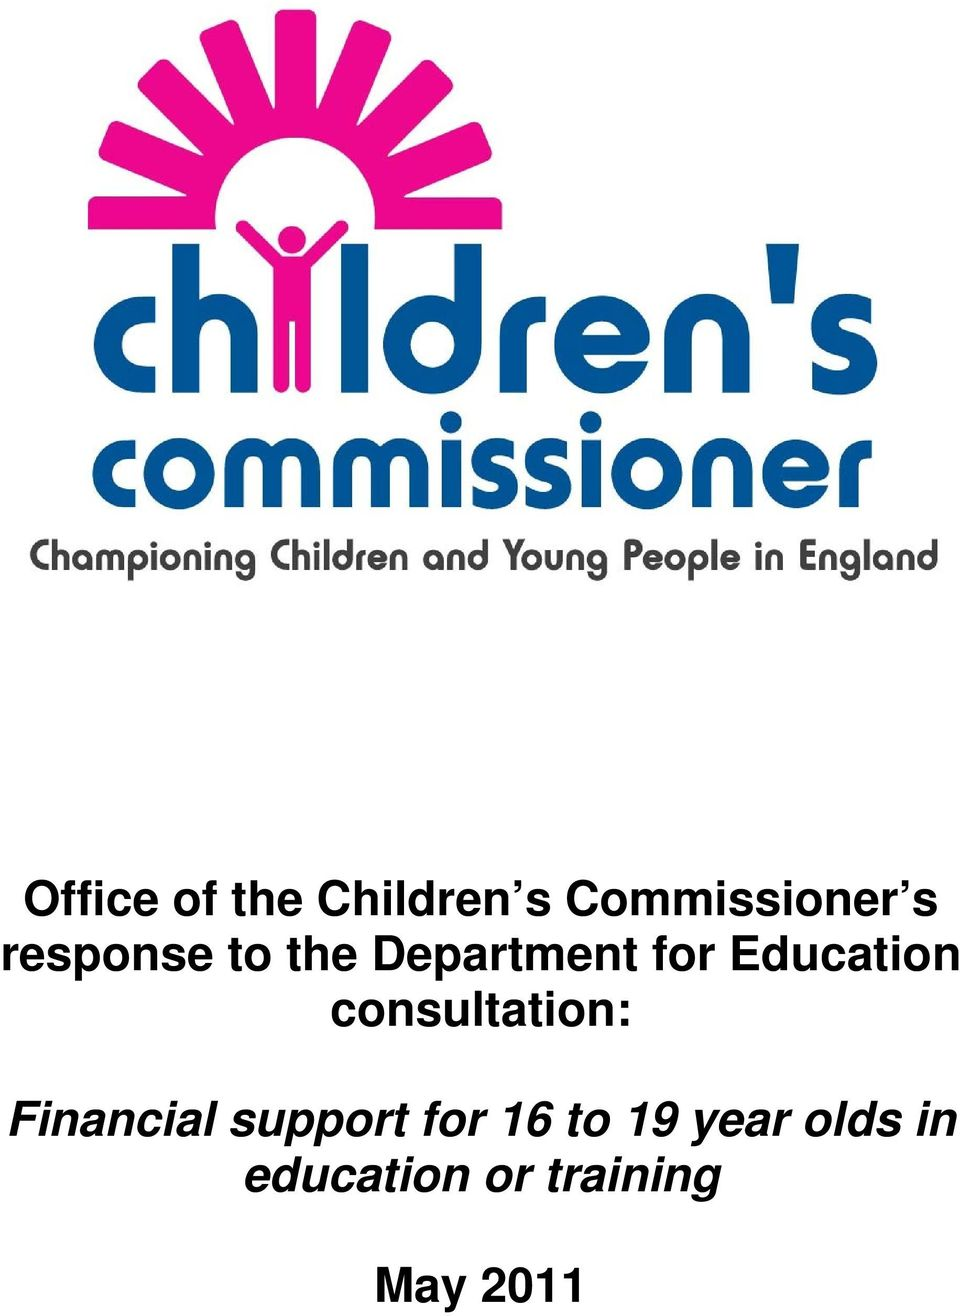 consultation: Financial support for 16 to